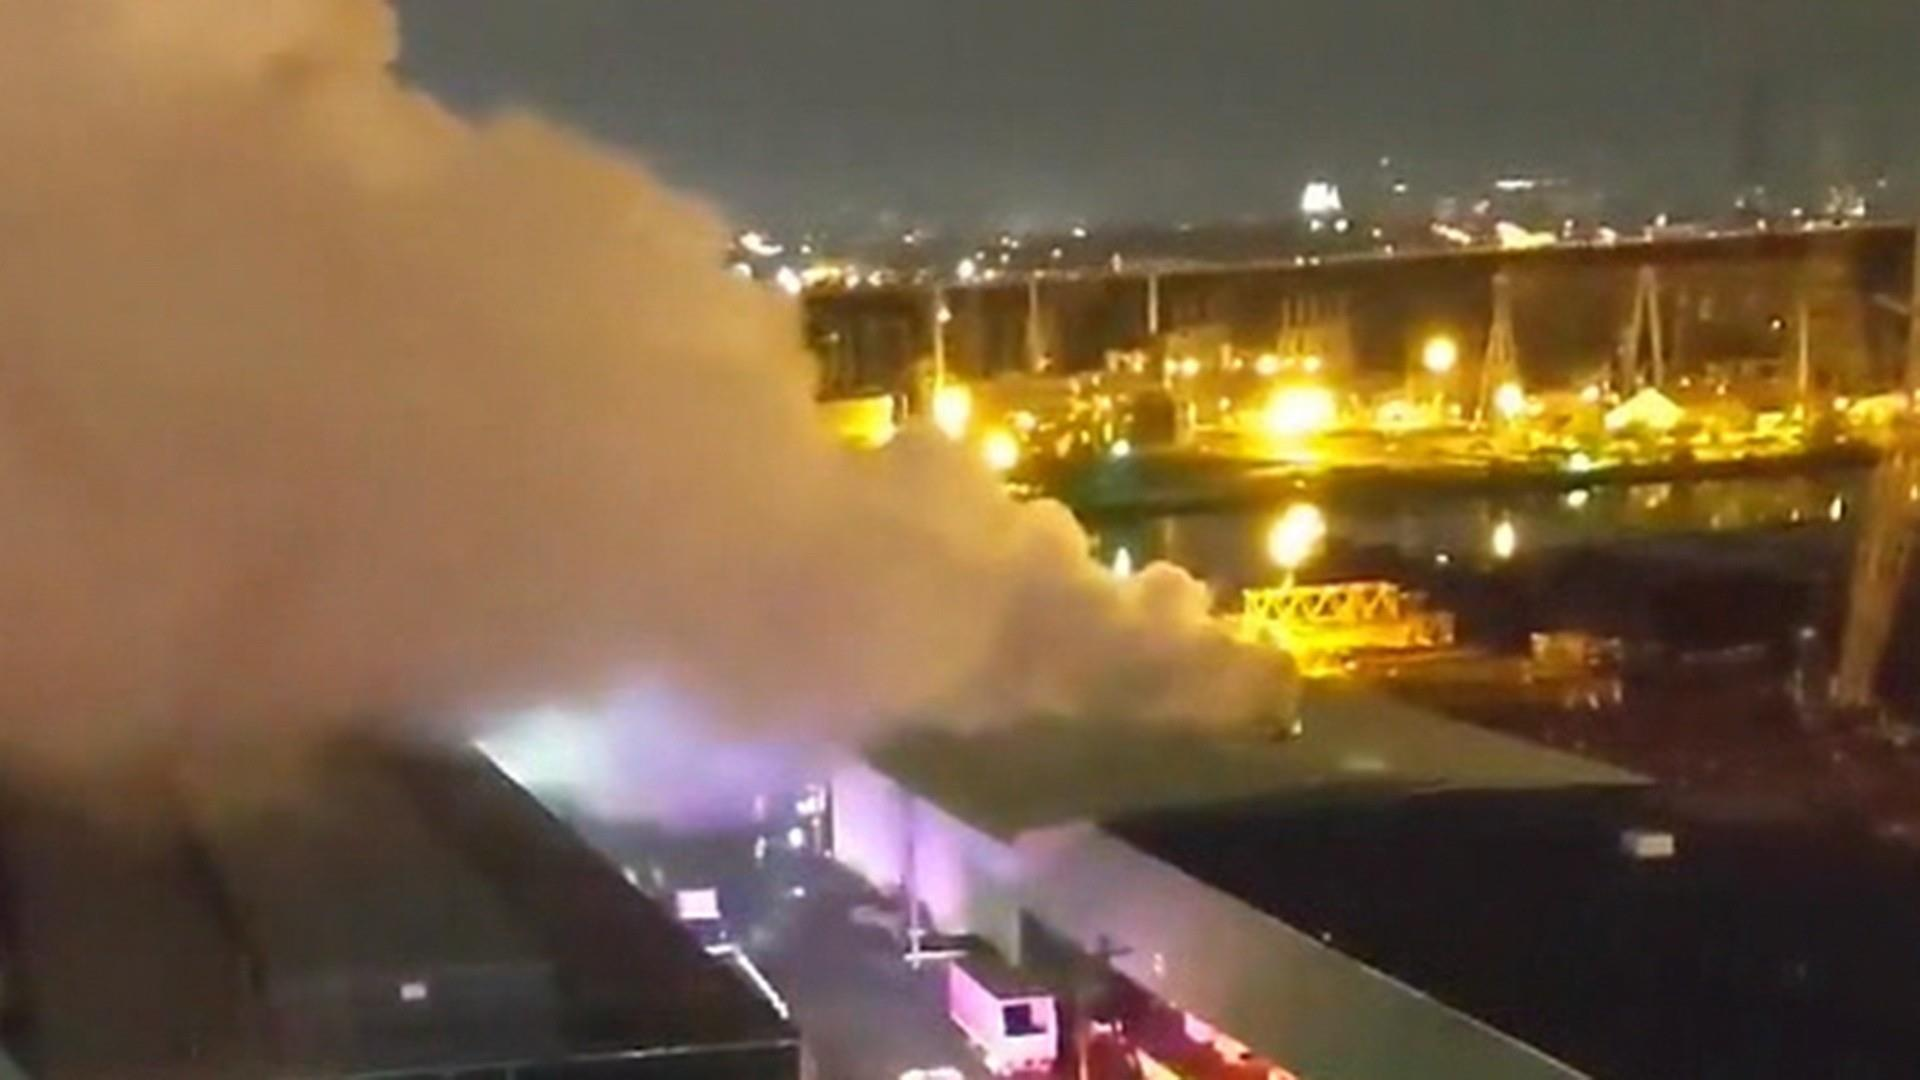 Chemical fire breaks out near New York City